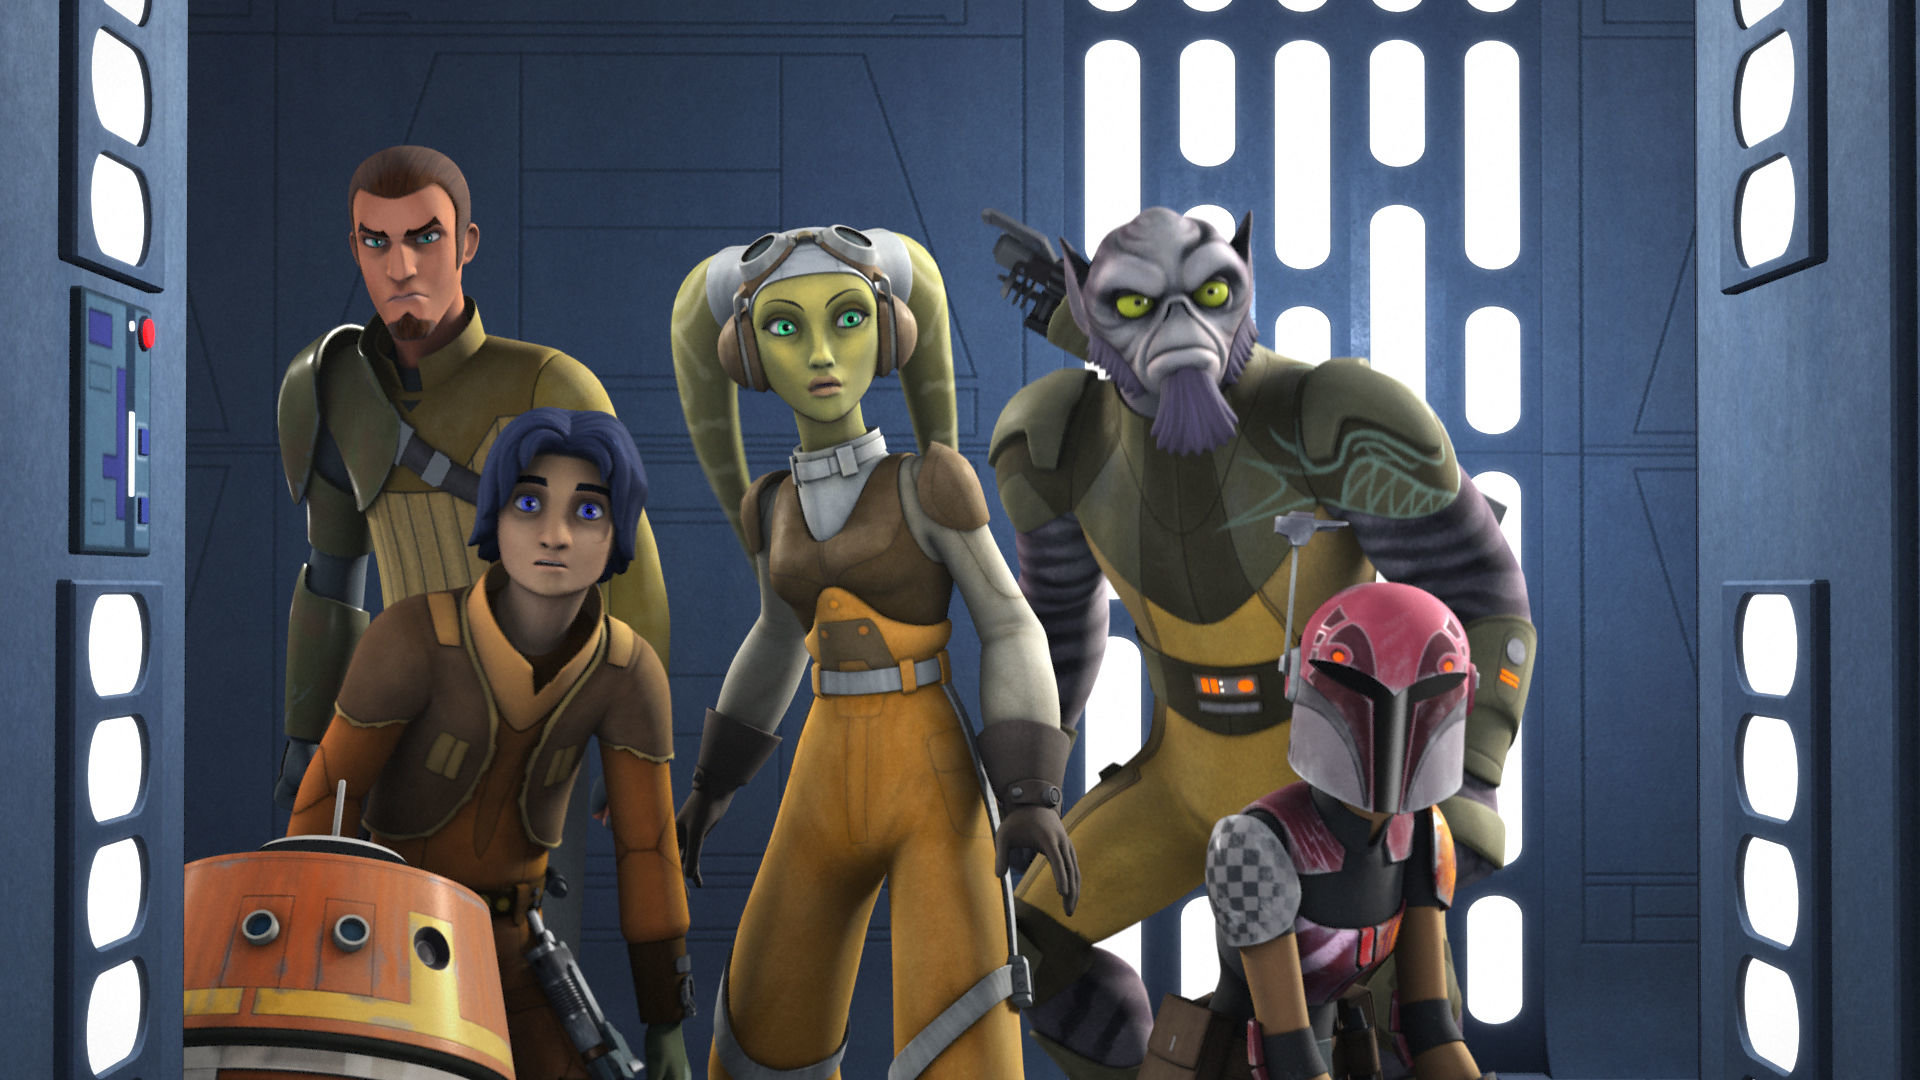 Awesome Star Wars Rebels Free Wallpaper Id 456116 For Full Hd 1920x1080 Pc